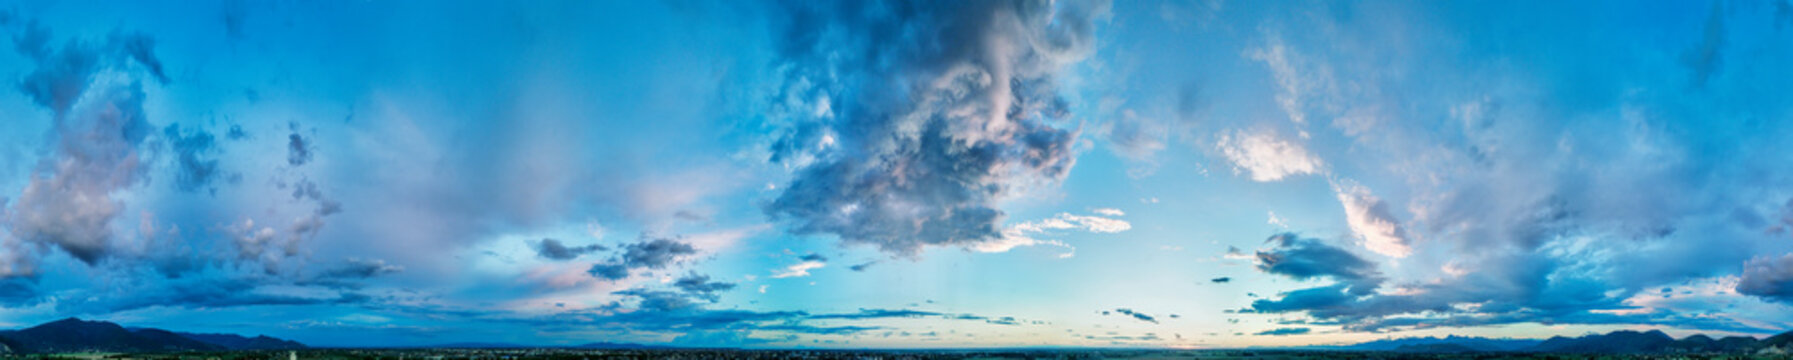 Drone viewpoint of sunset sky in summer season. Panoramic view of dusk clouds